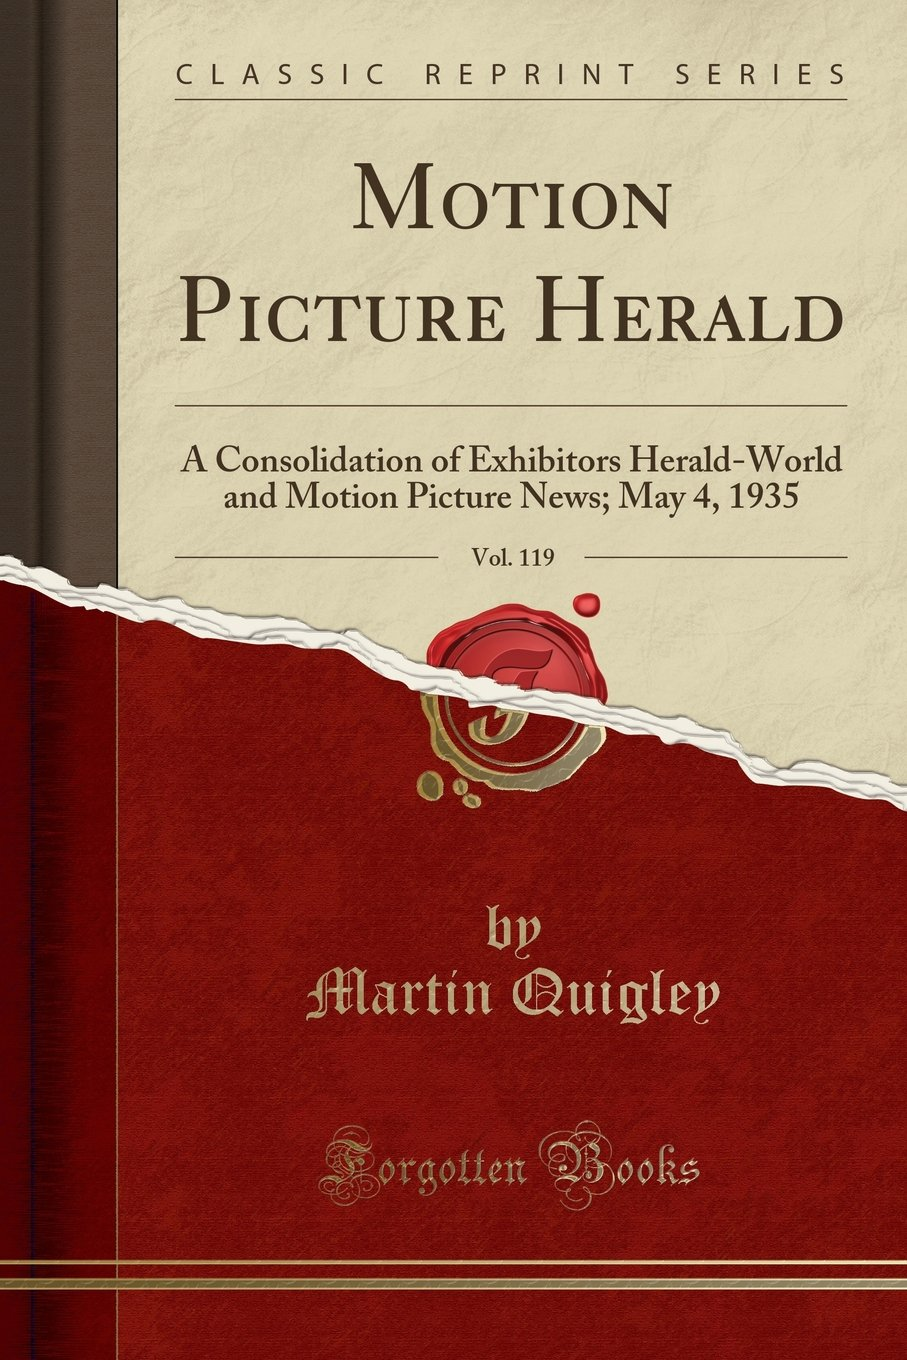 Motion Picture Herald, Vol. 119: A Consolidation of Exhibitors Herald-World and Motion Picture News; May 4, 1935 (Classic Reprint) PDF ePub ebook